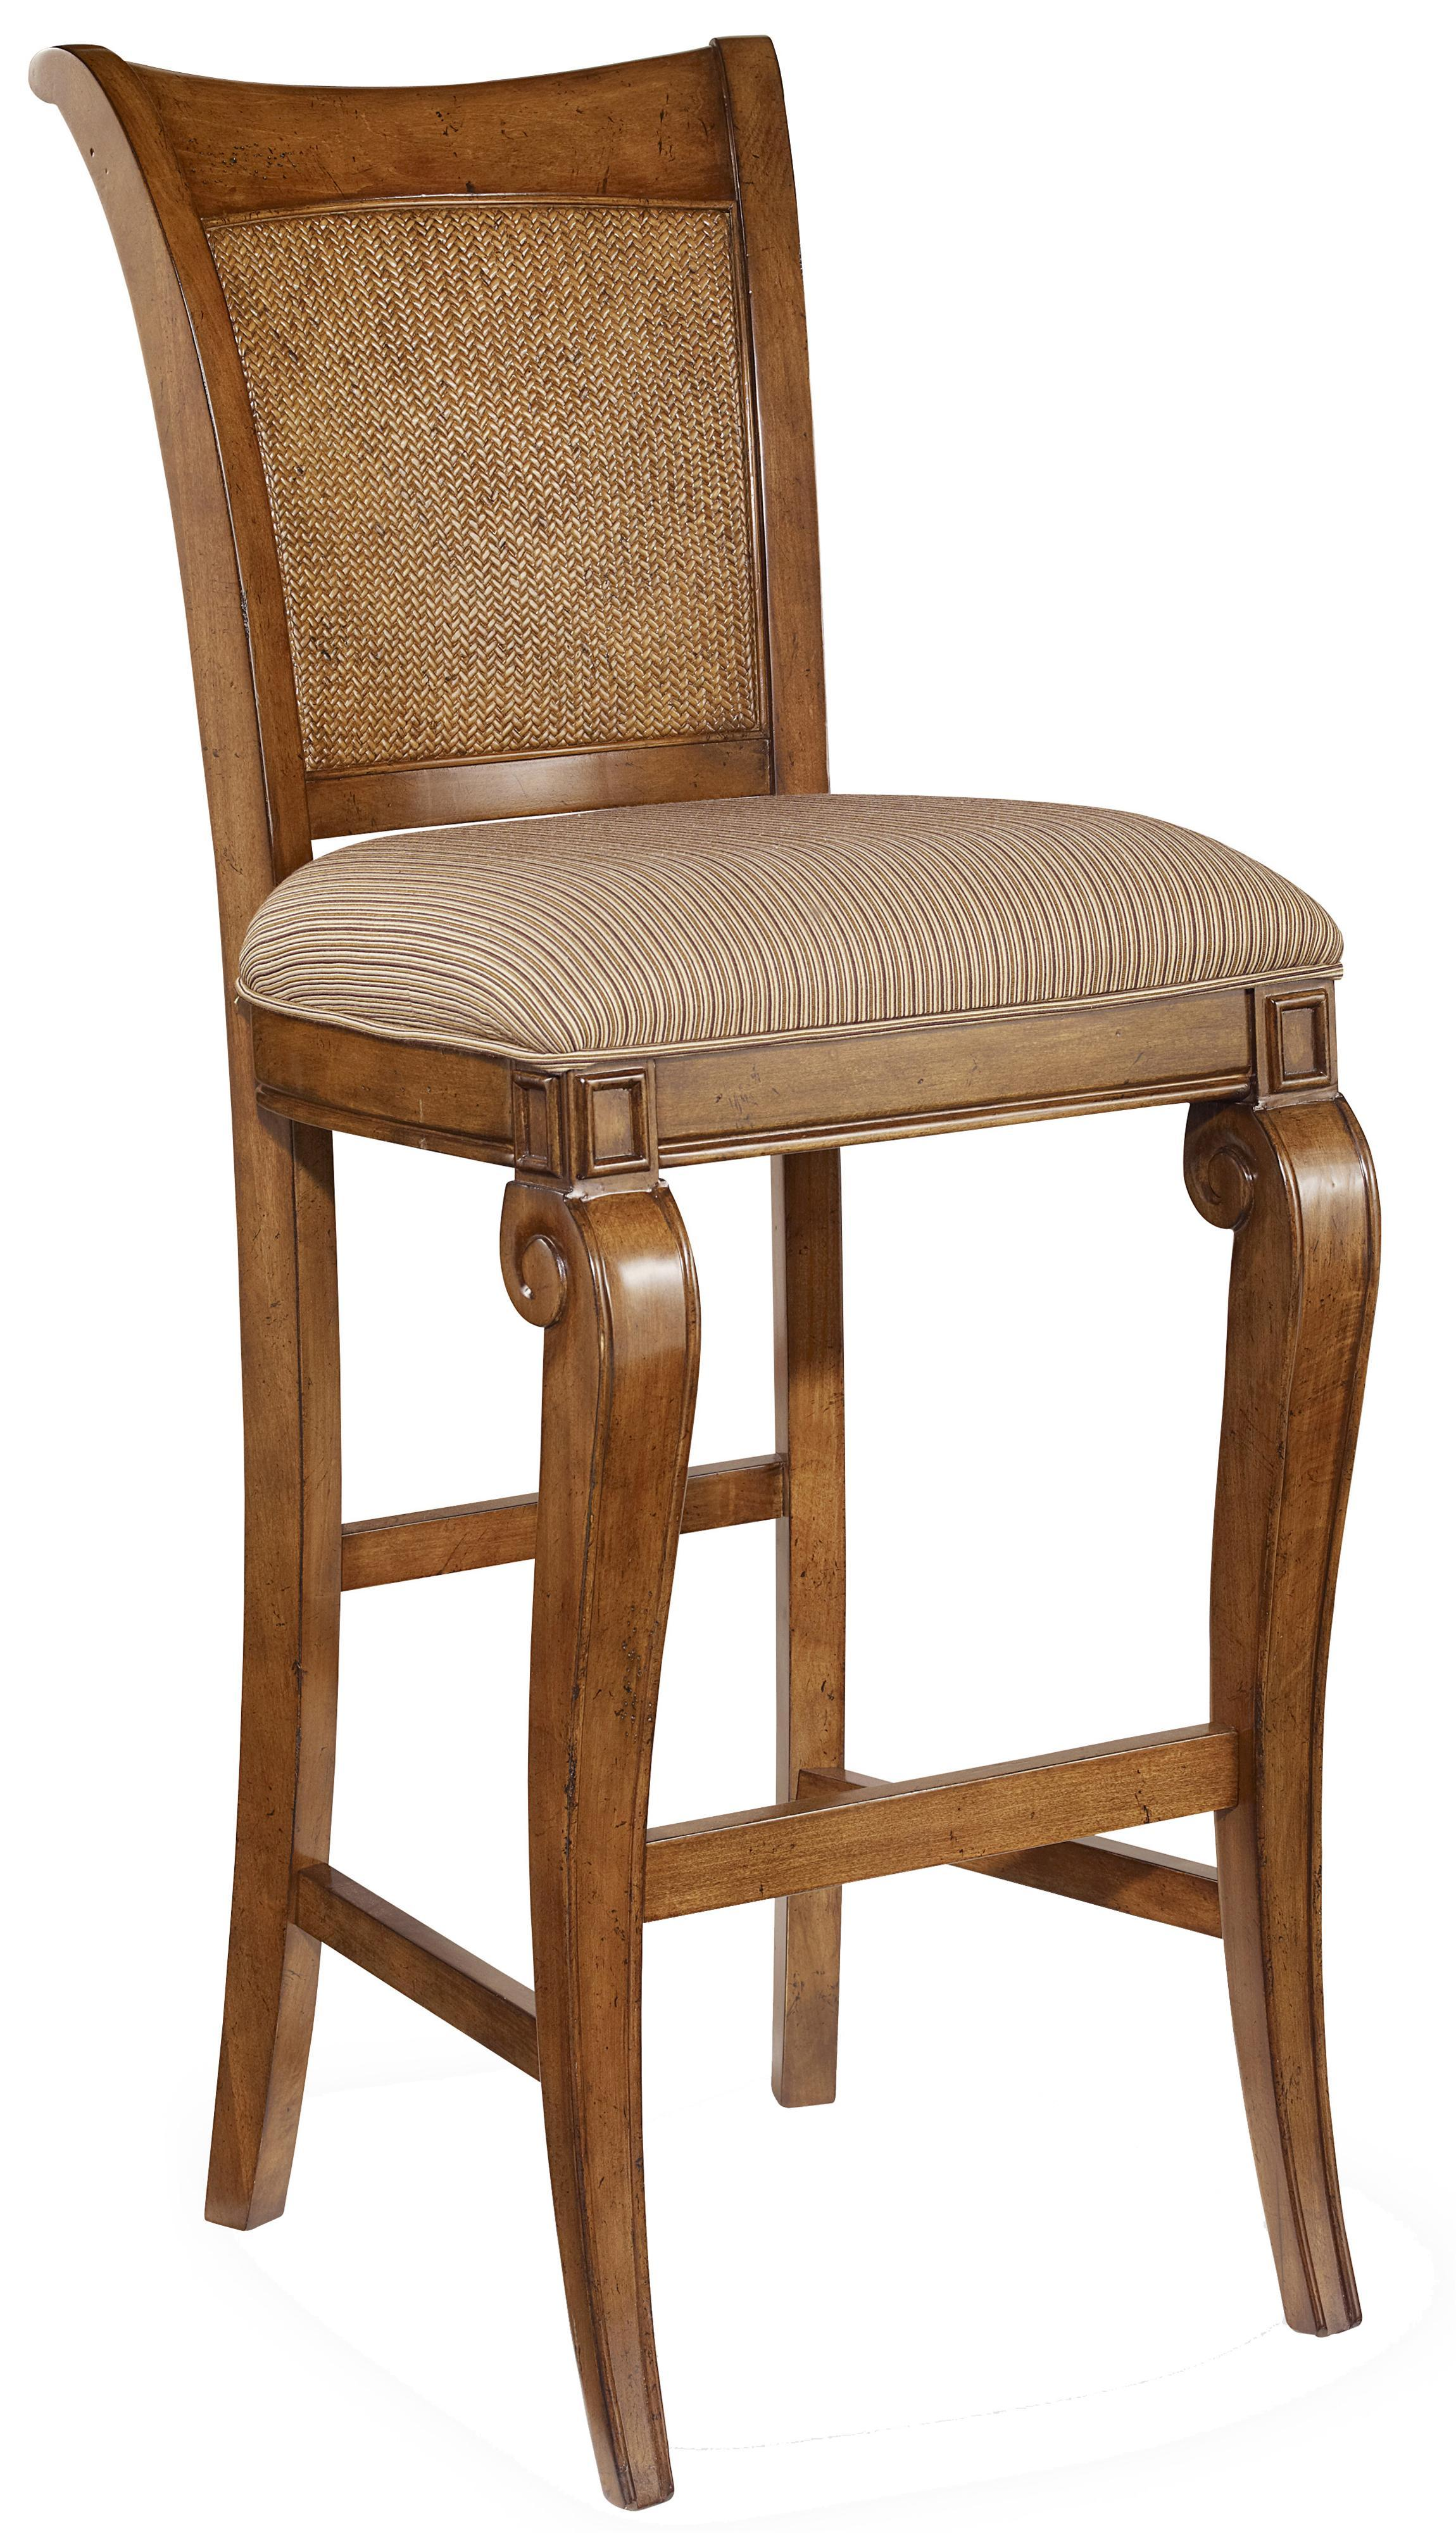 Hooker Furniture Windward Bar Stool - Item Number: 1125-76460